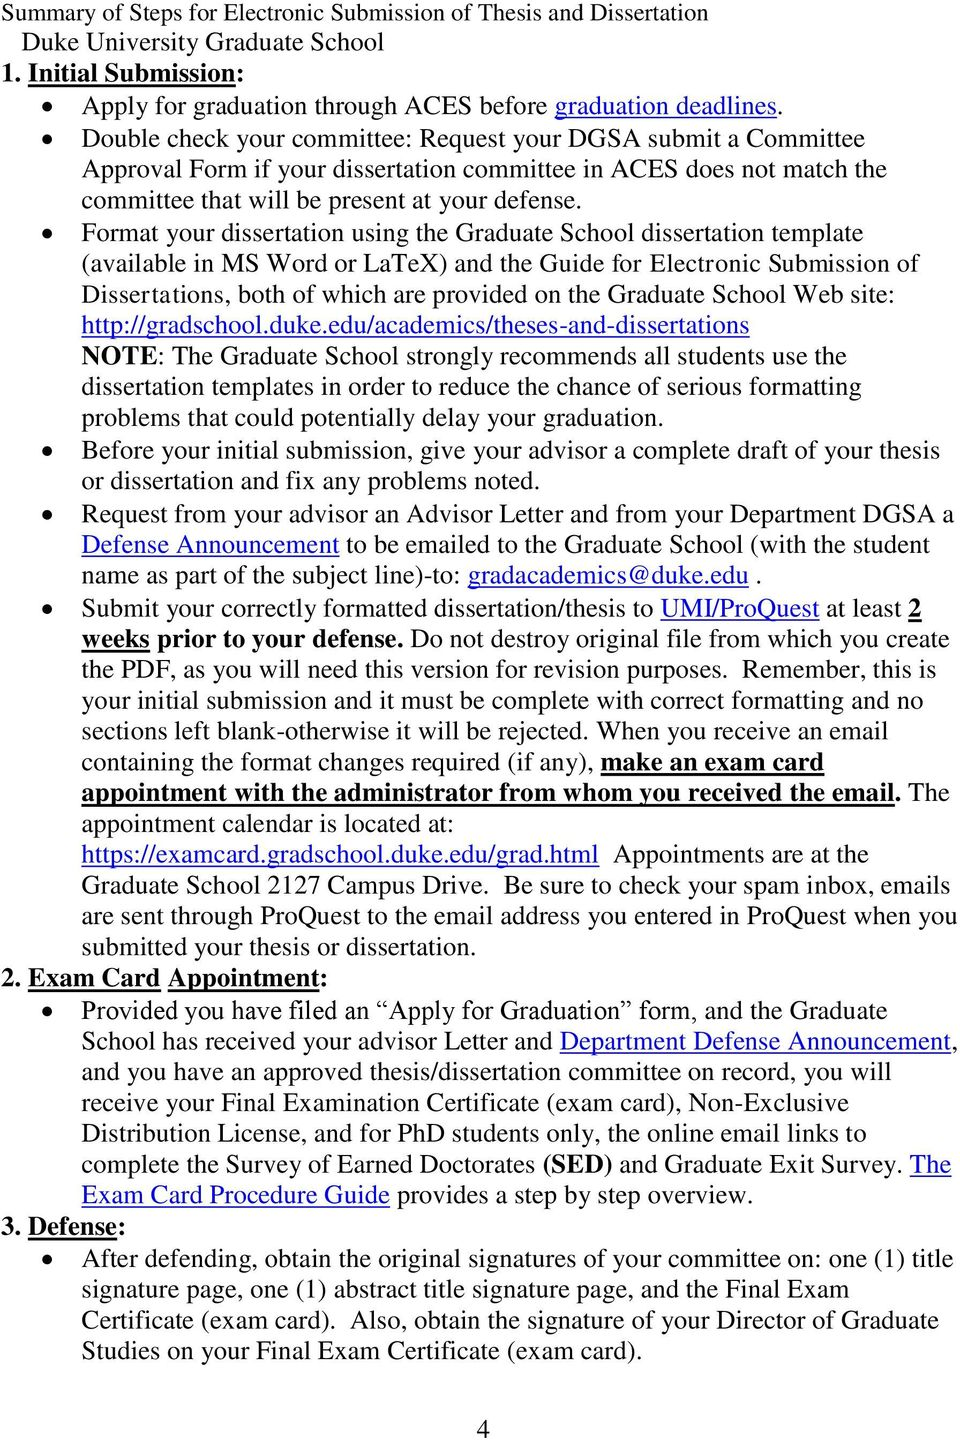 Format your dissertation using the Graduate School dissertation template (available in MS Word or LaTeX) and the Guide for Electronic Submission of Dissertations, both of which are provided on the